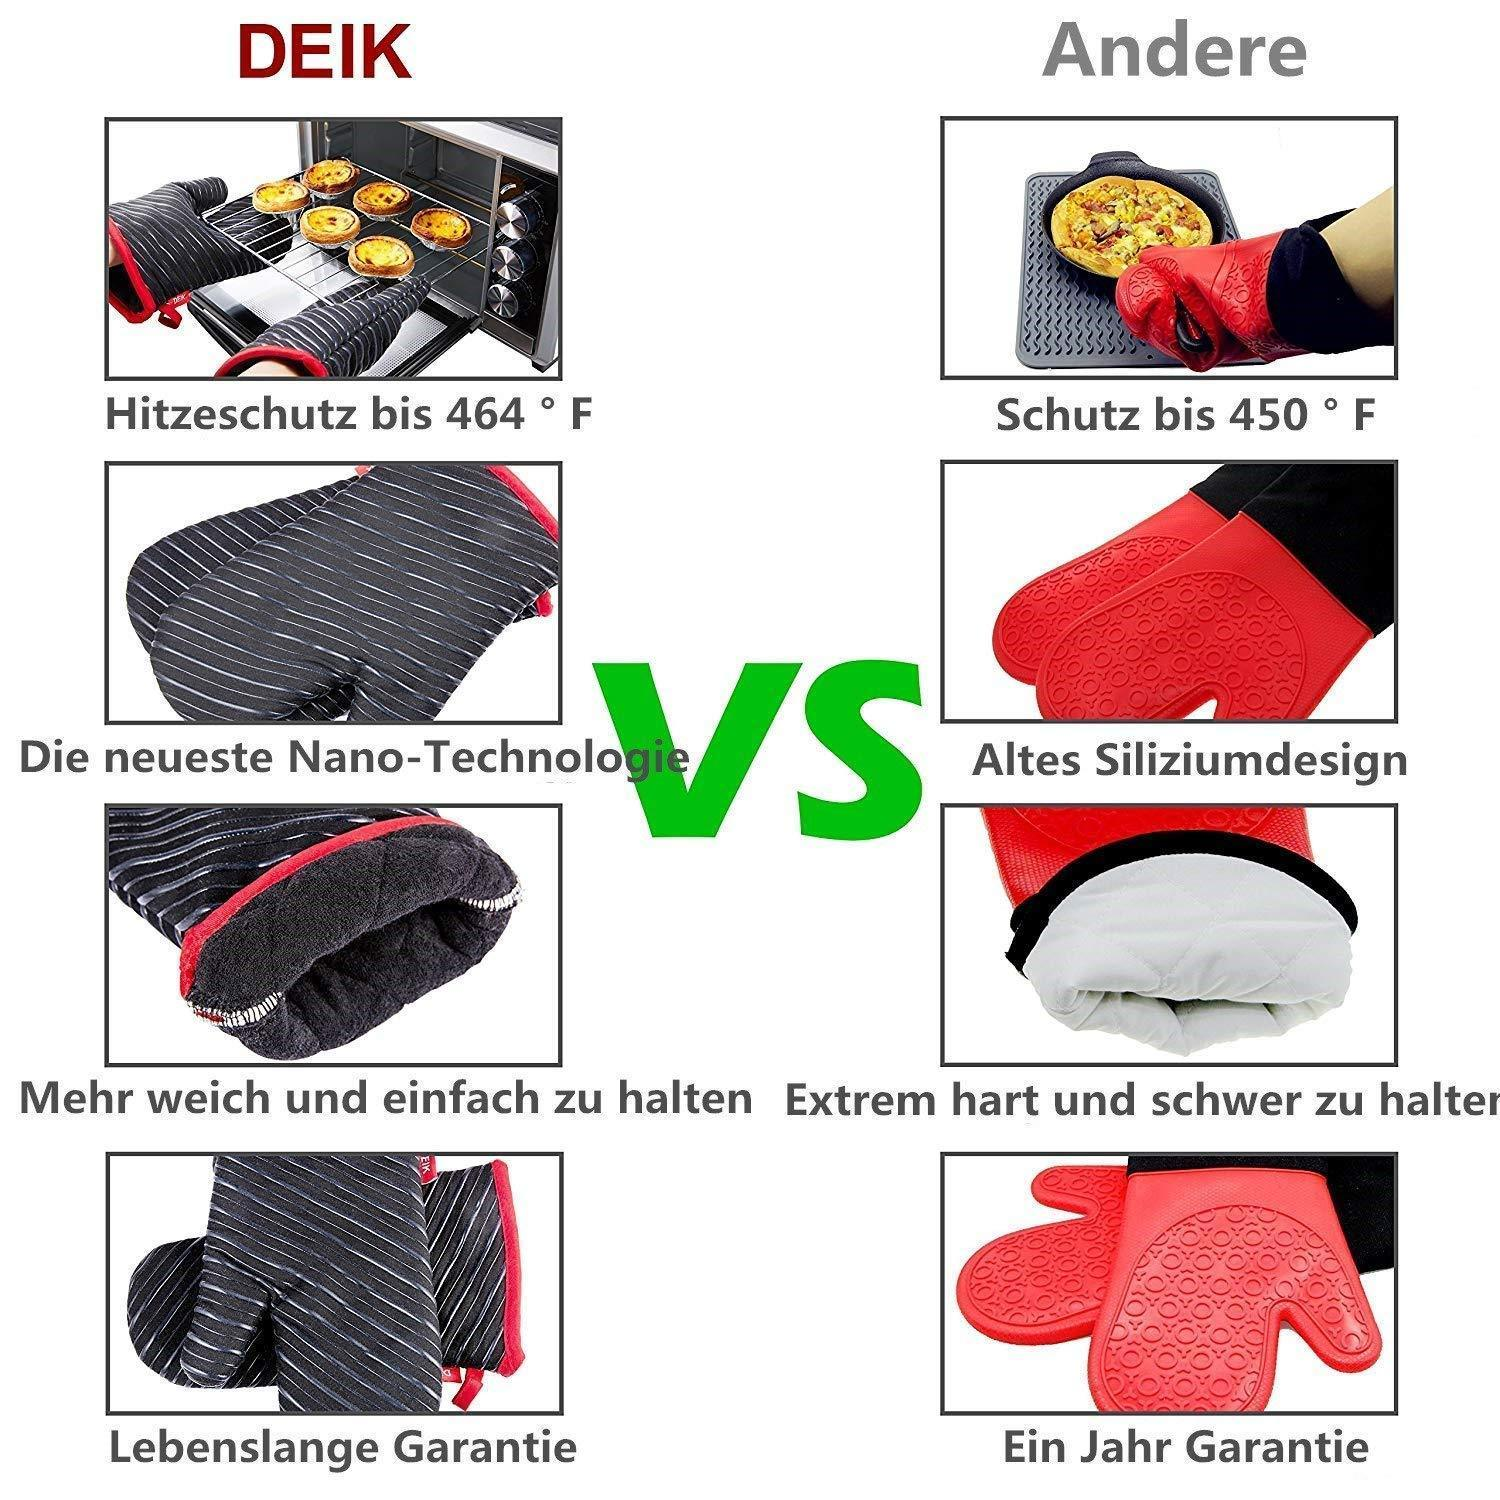 Exclusive deik oven mitts and potholders 4 piece sets for kitchen counter safe mats and advanced heat resistant oven mitt non slip textured grip pot holders nano technology